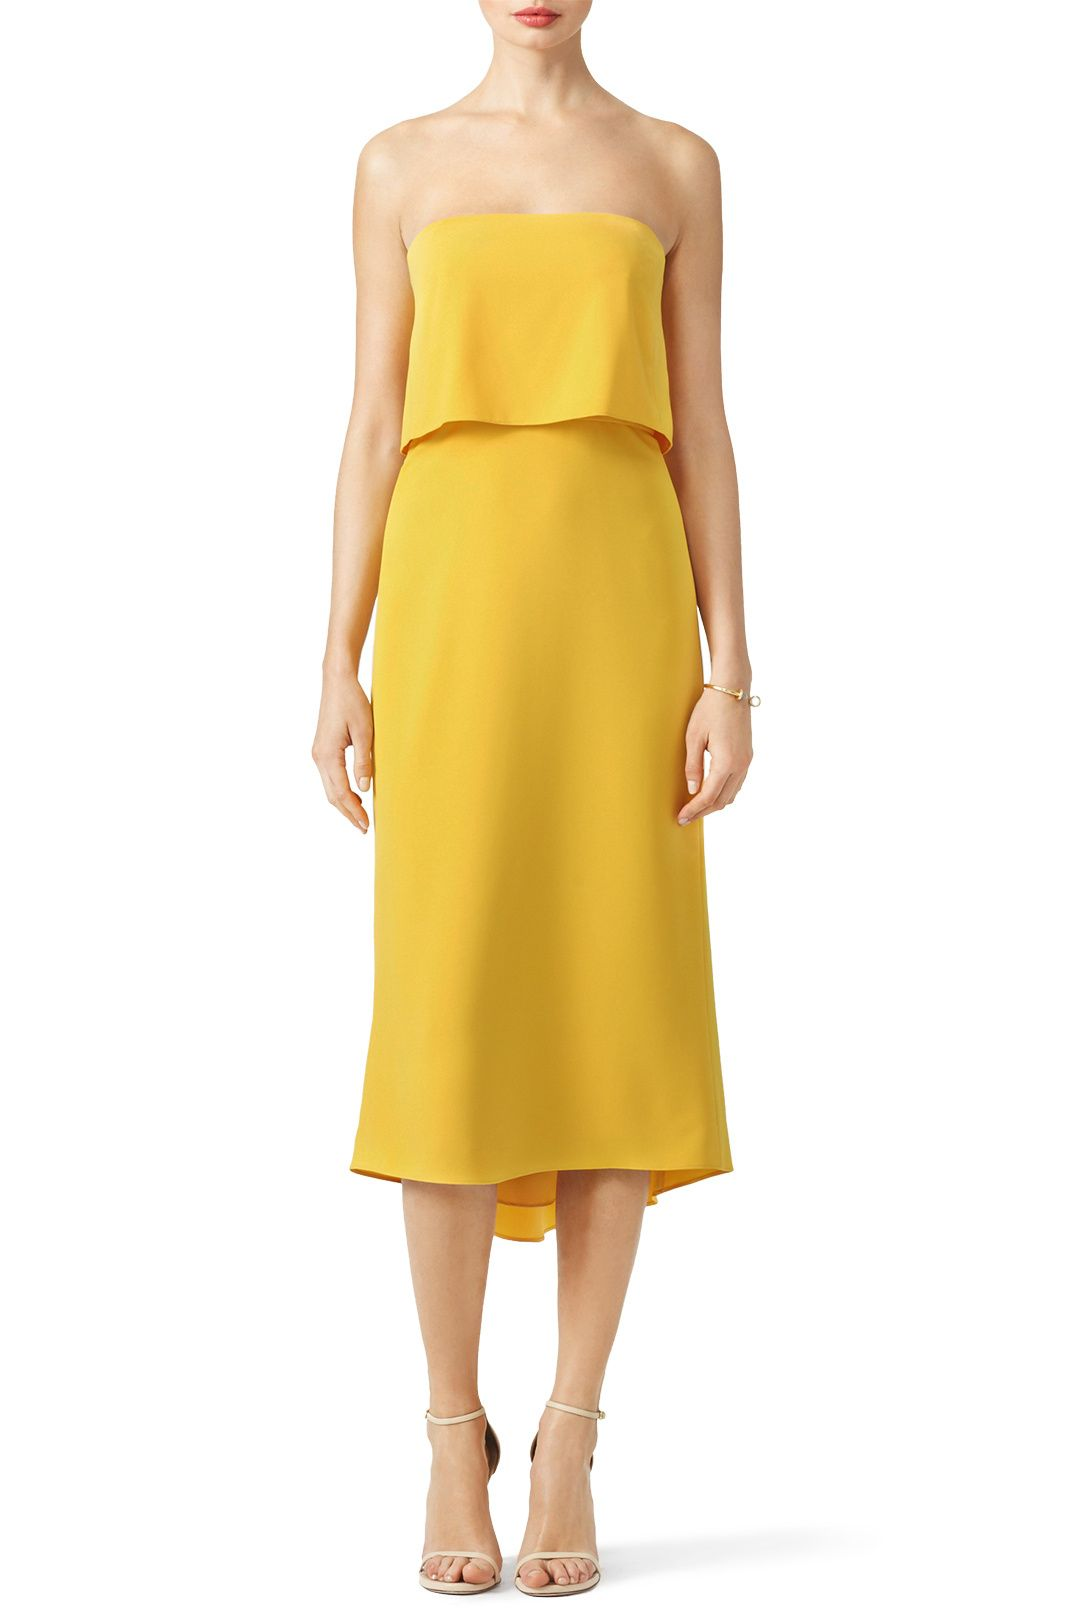 Yellow midi dress with ruffled layer. Perfect